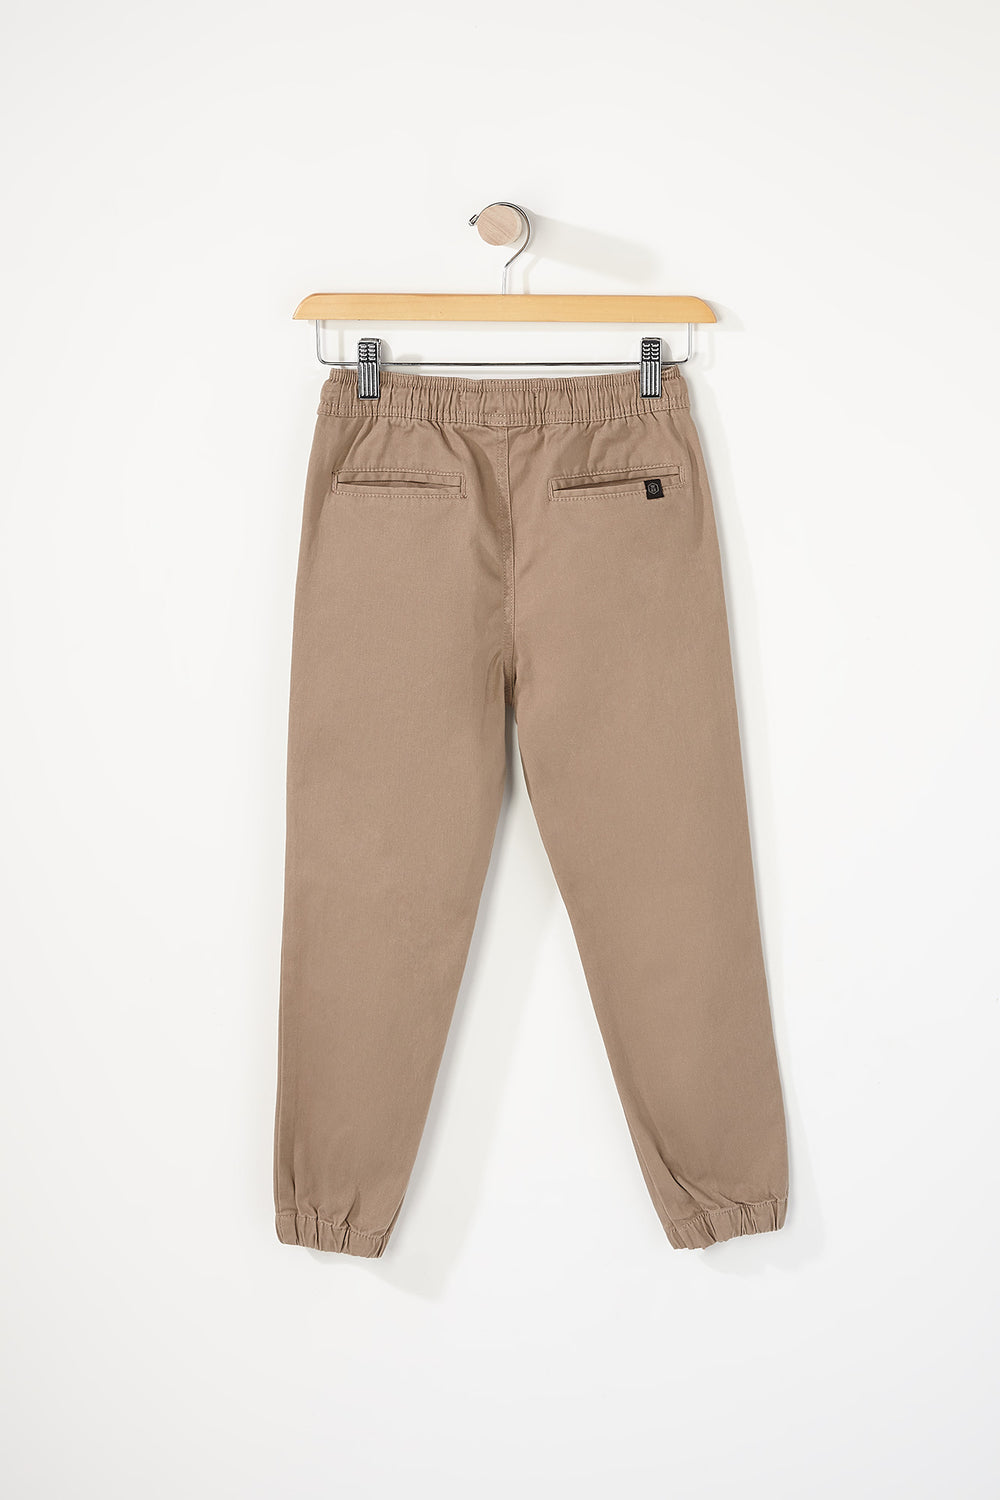 West49 Boys Basic Jogger Sand